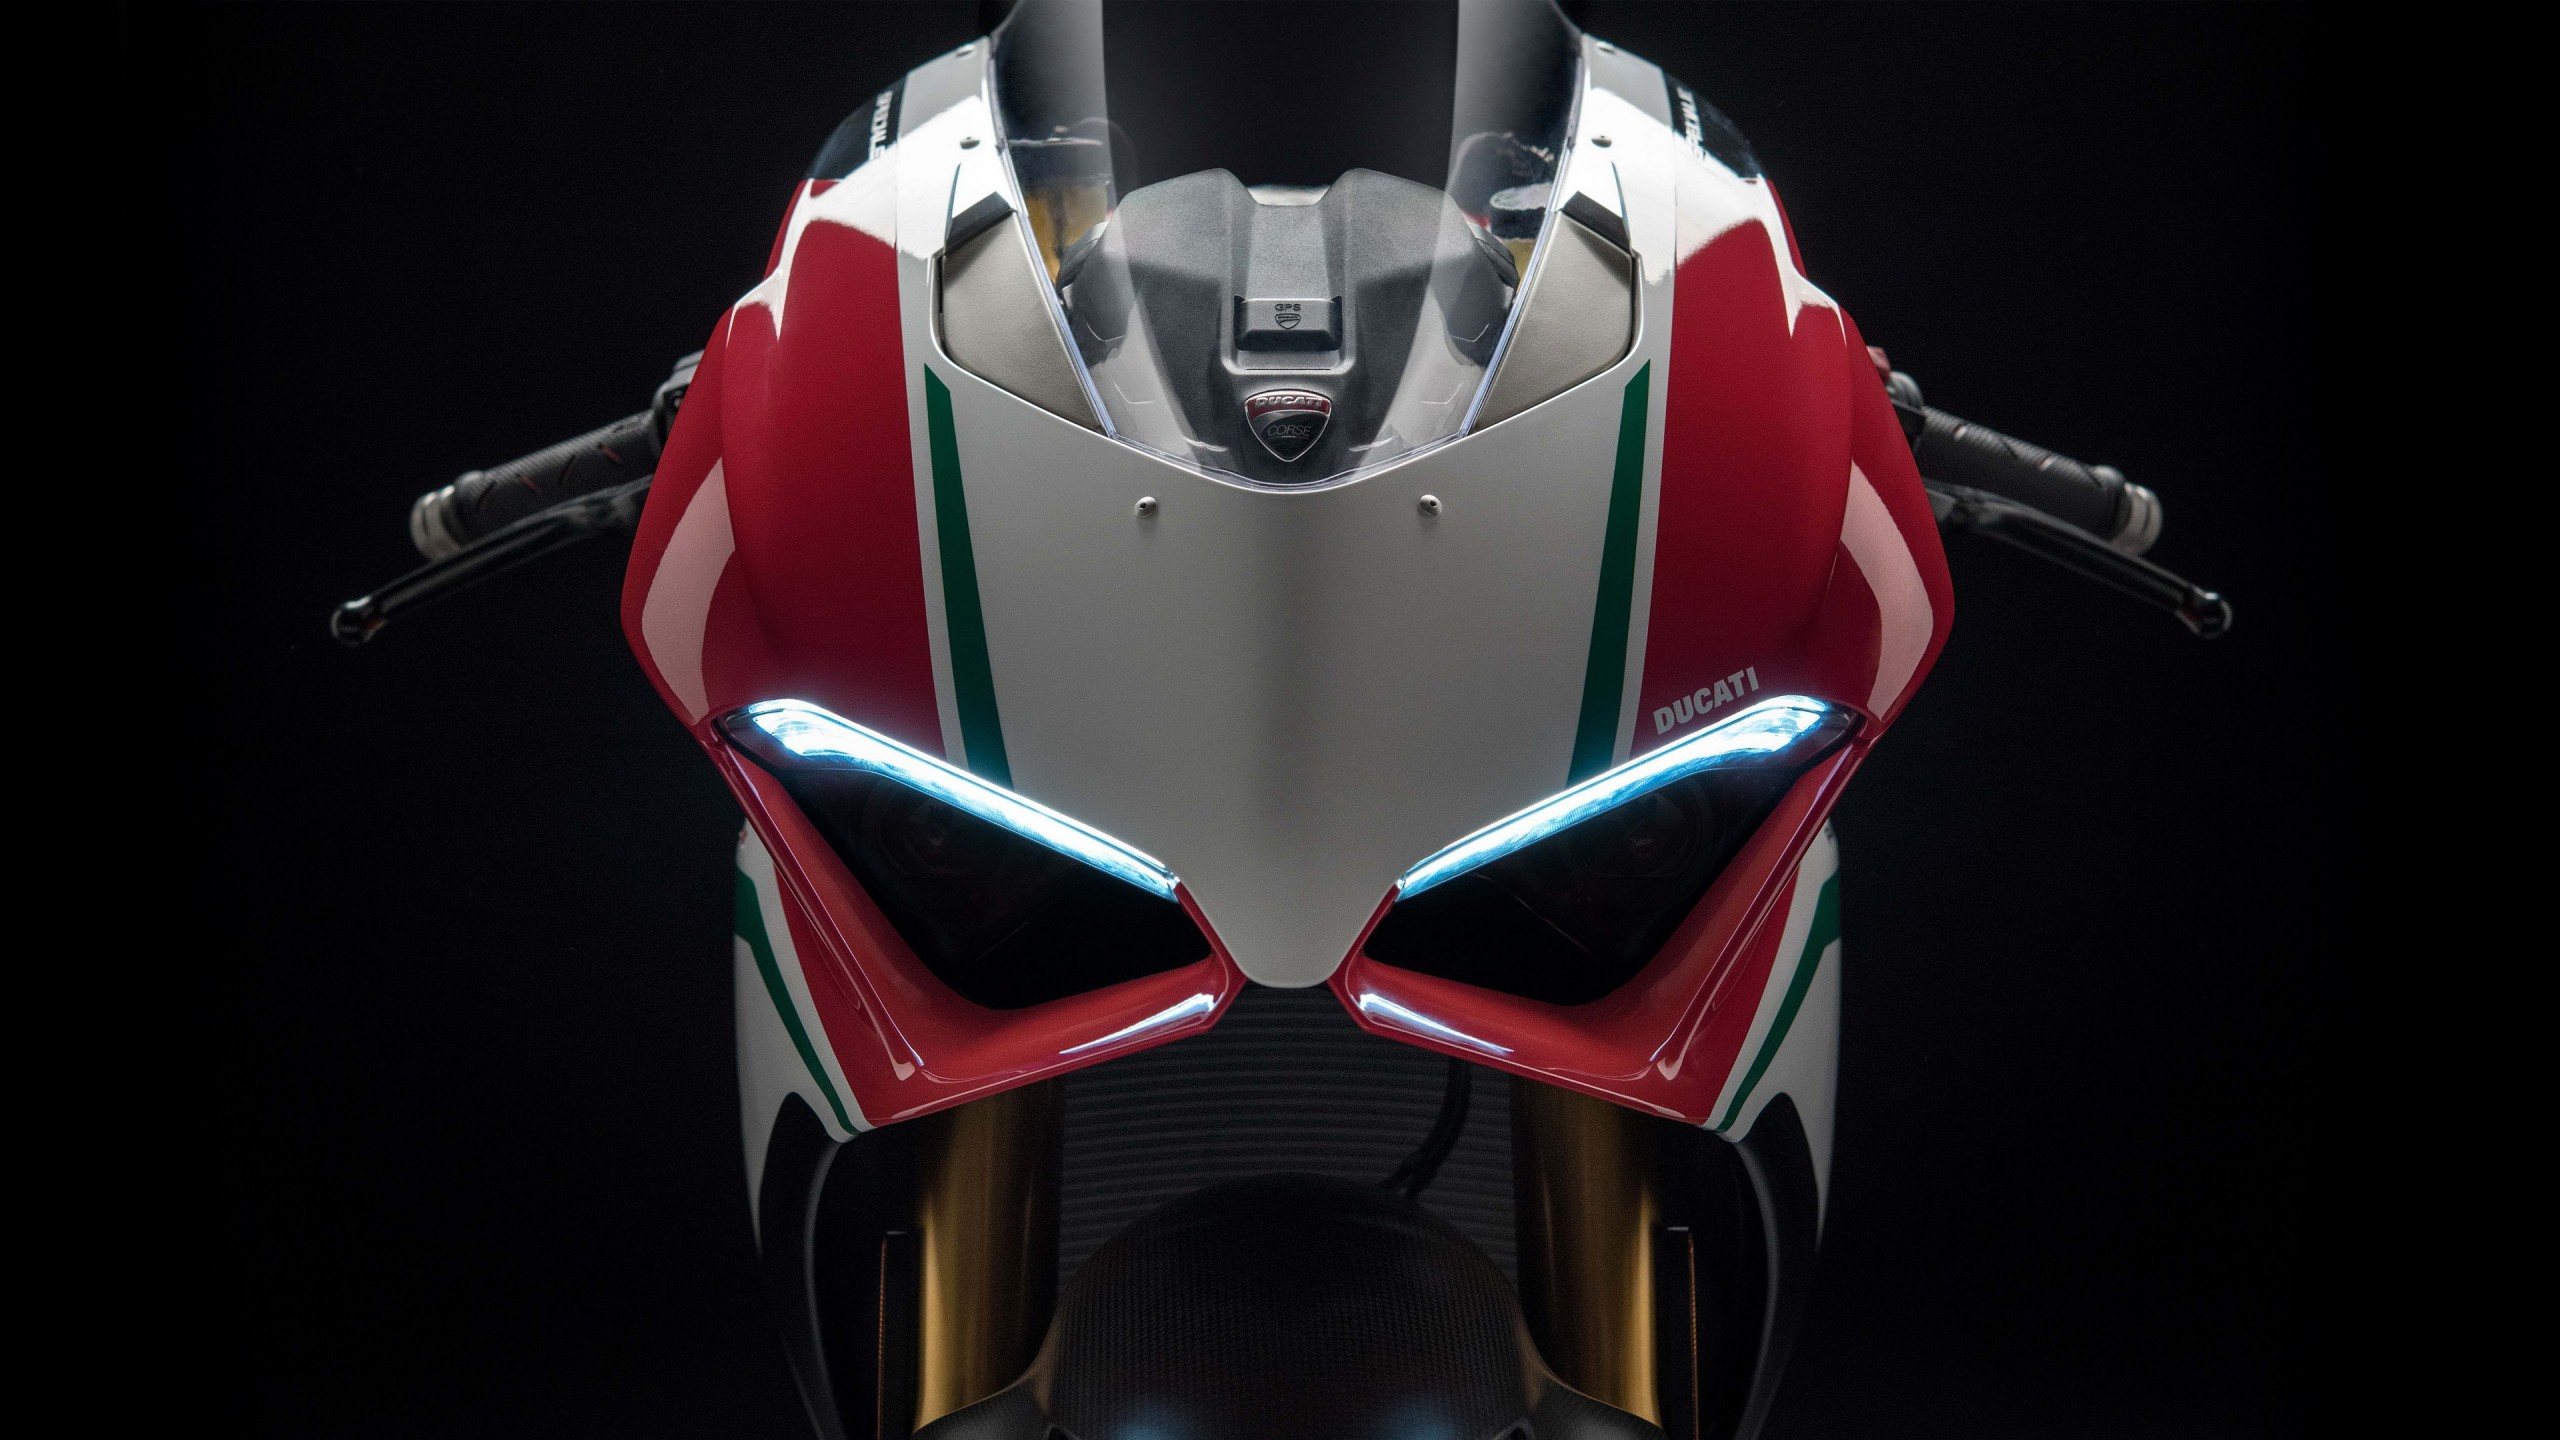 Hd 3d Wallpapers 1080p Widescreen Windows 7 2018 Ducati Panigale V4 Speciale 4k Wallpapers Hd